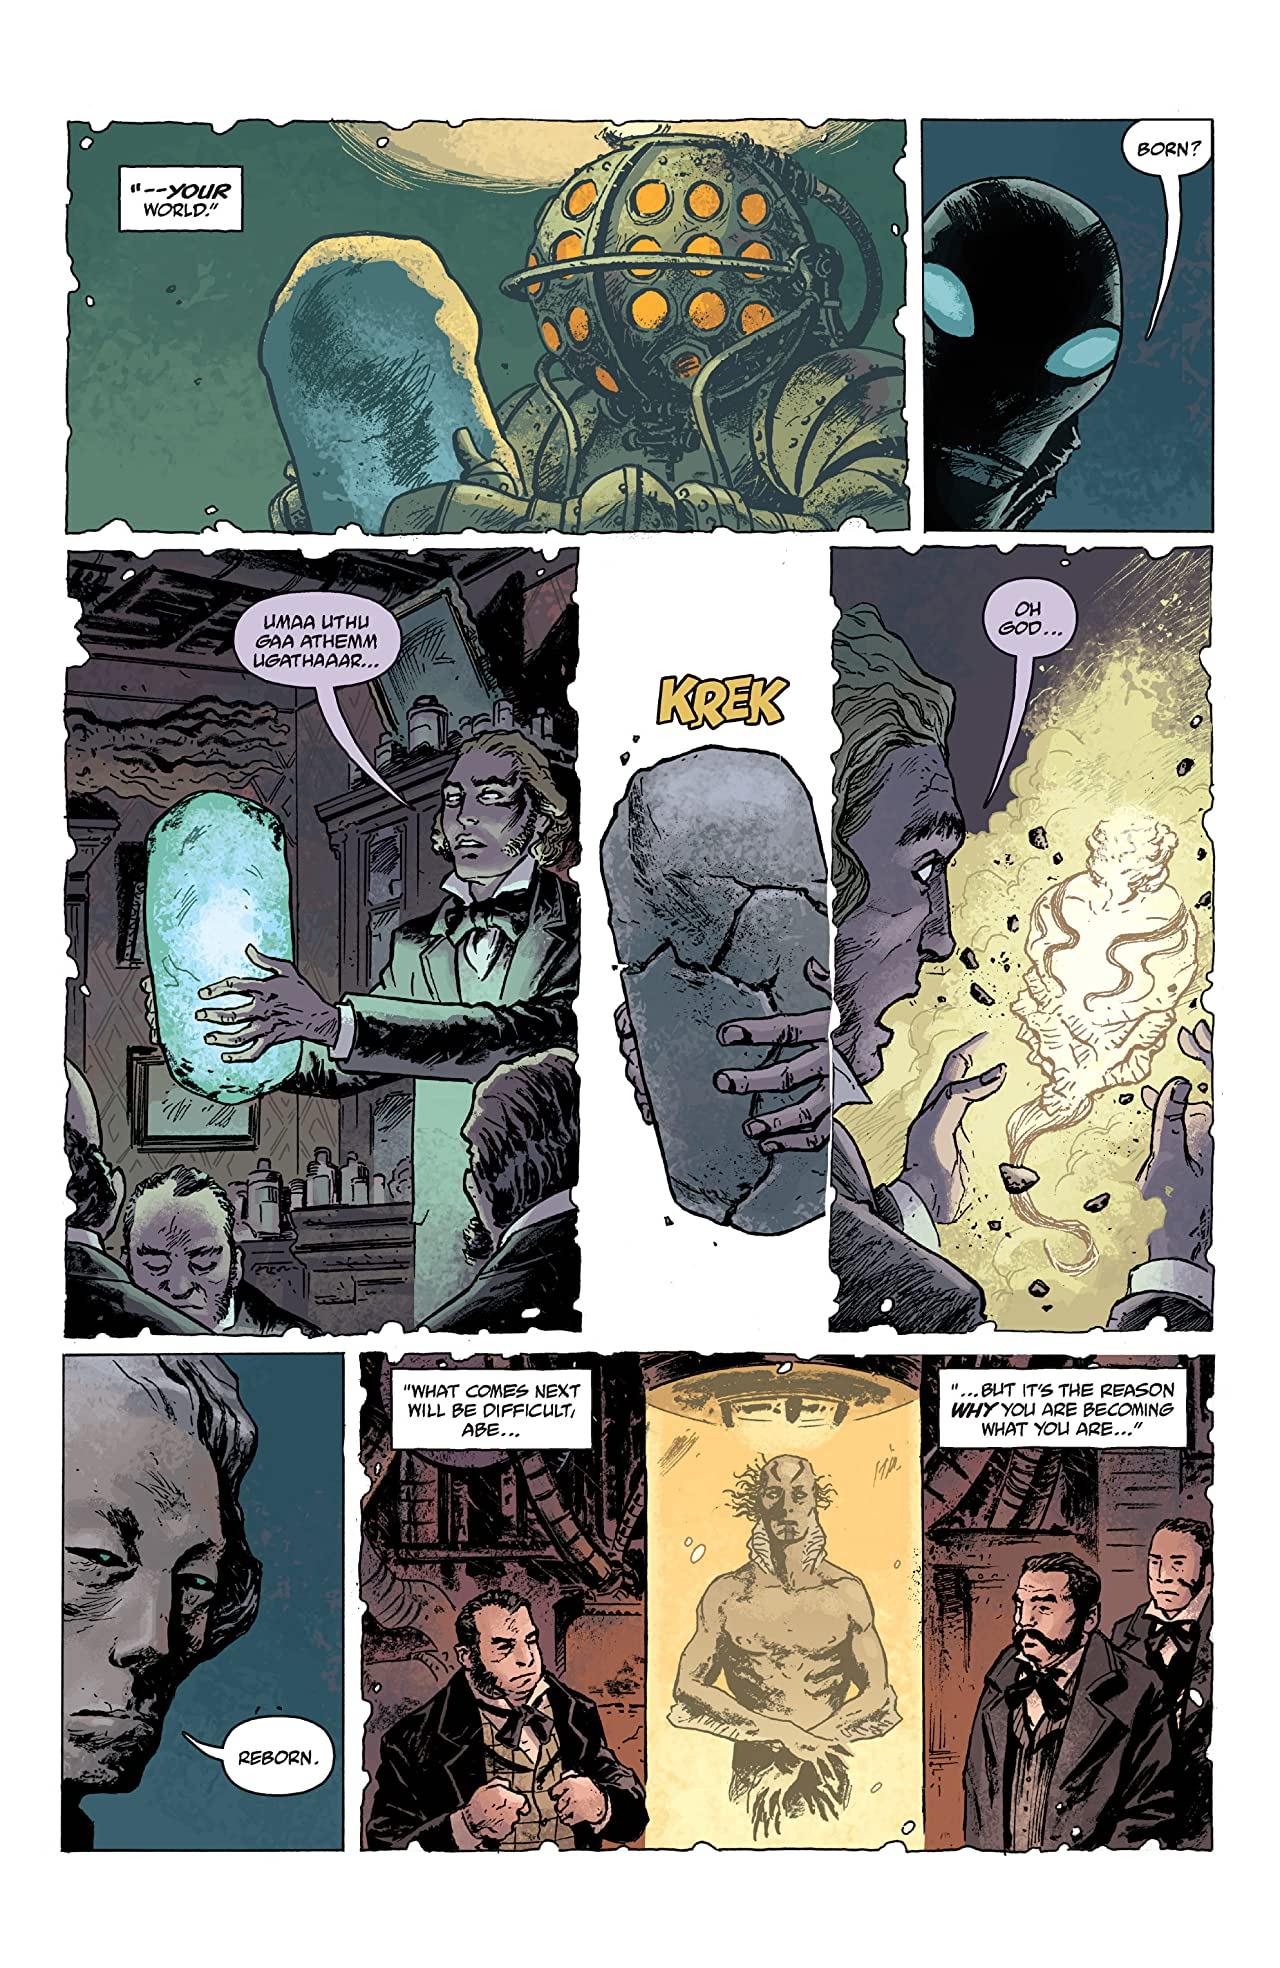 Abe Sapien #2: Dark and Terrible part 2